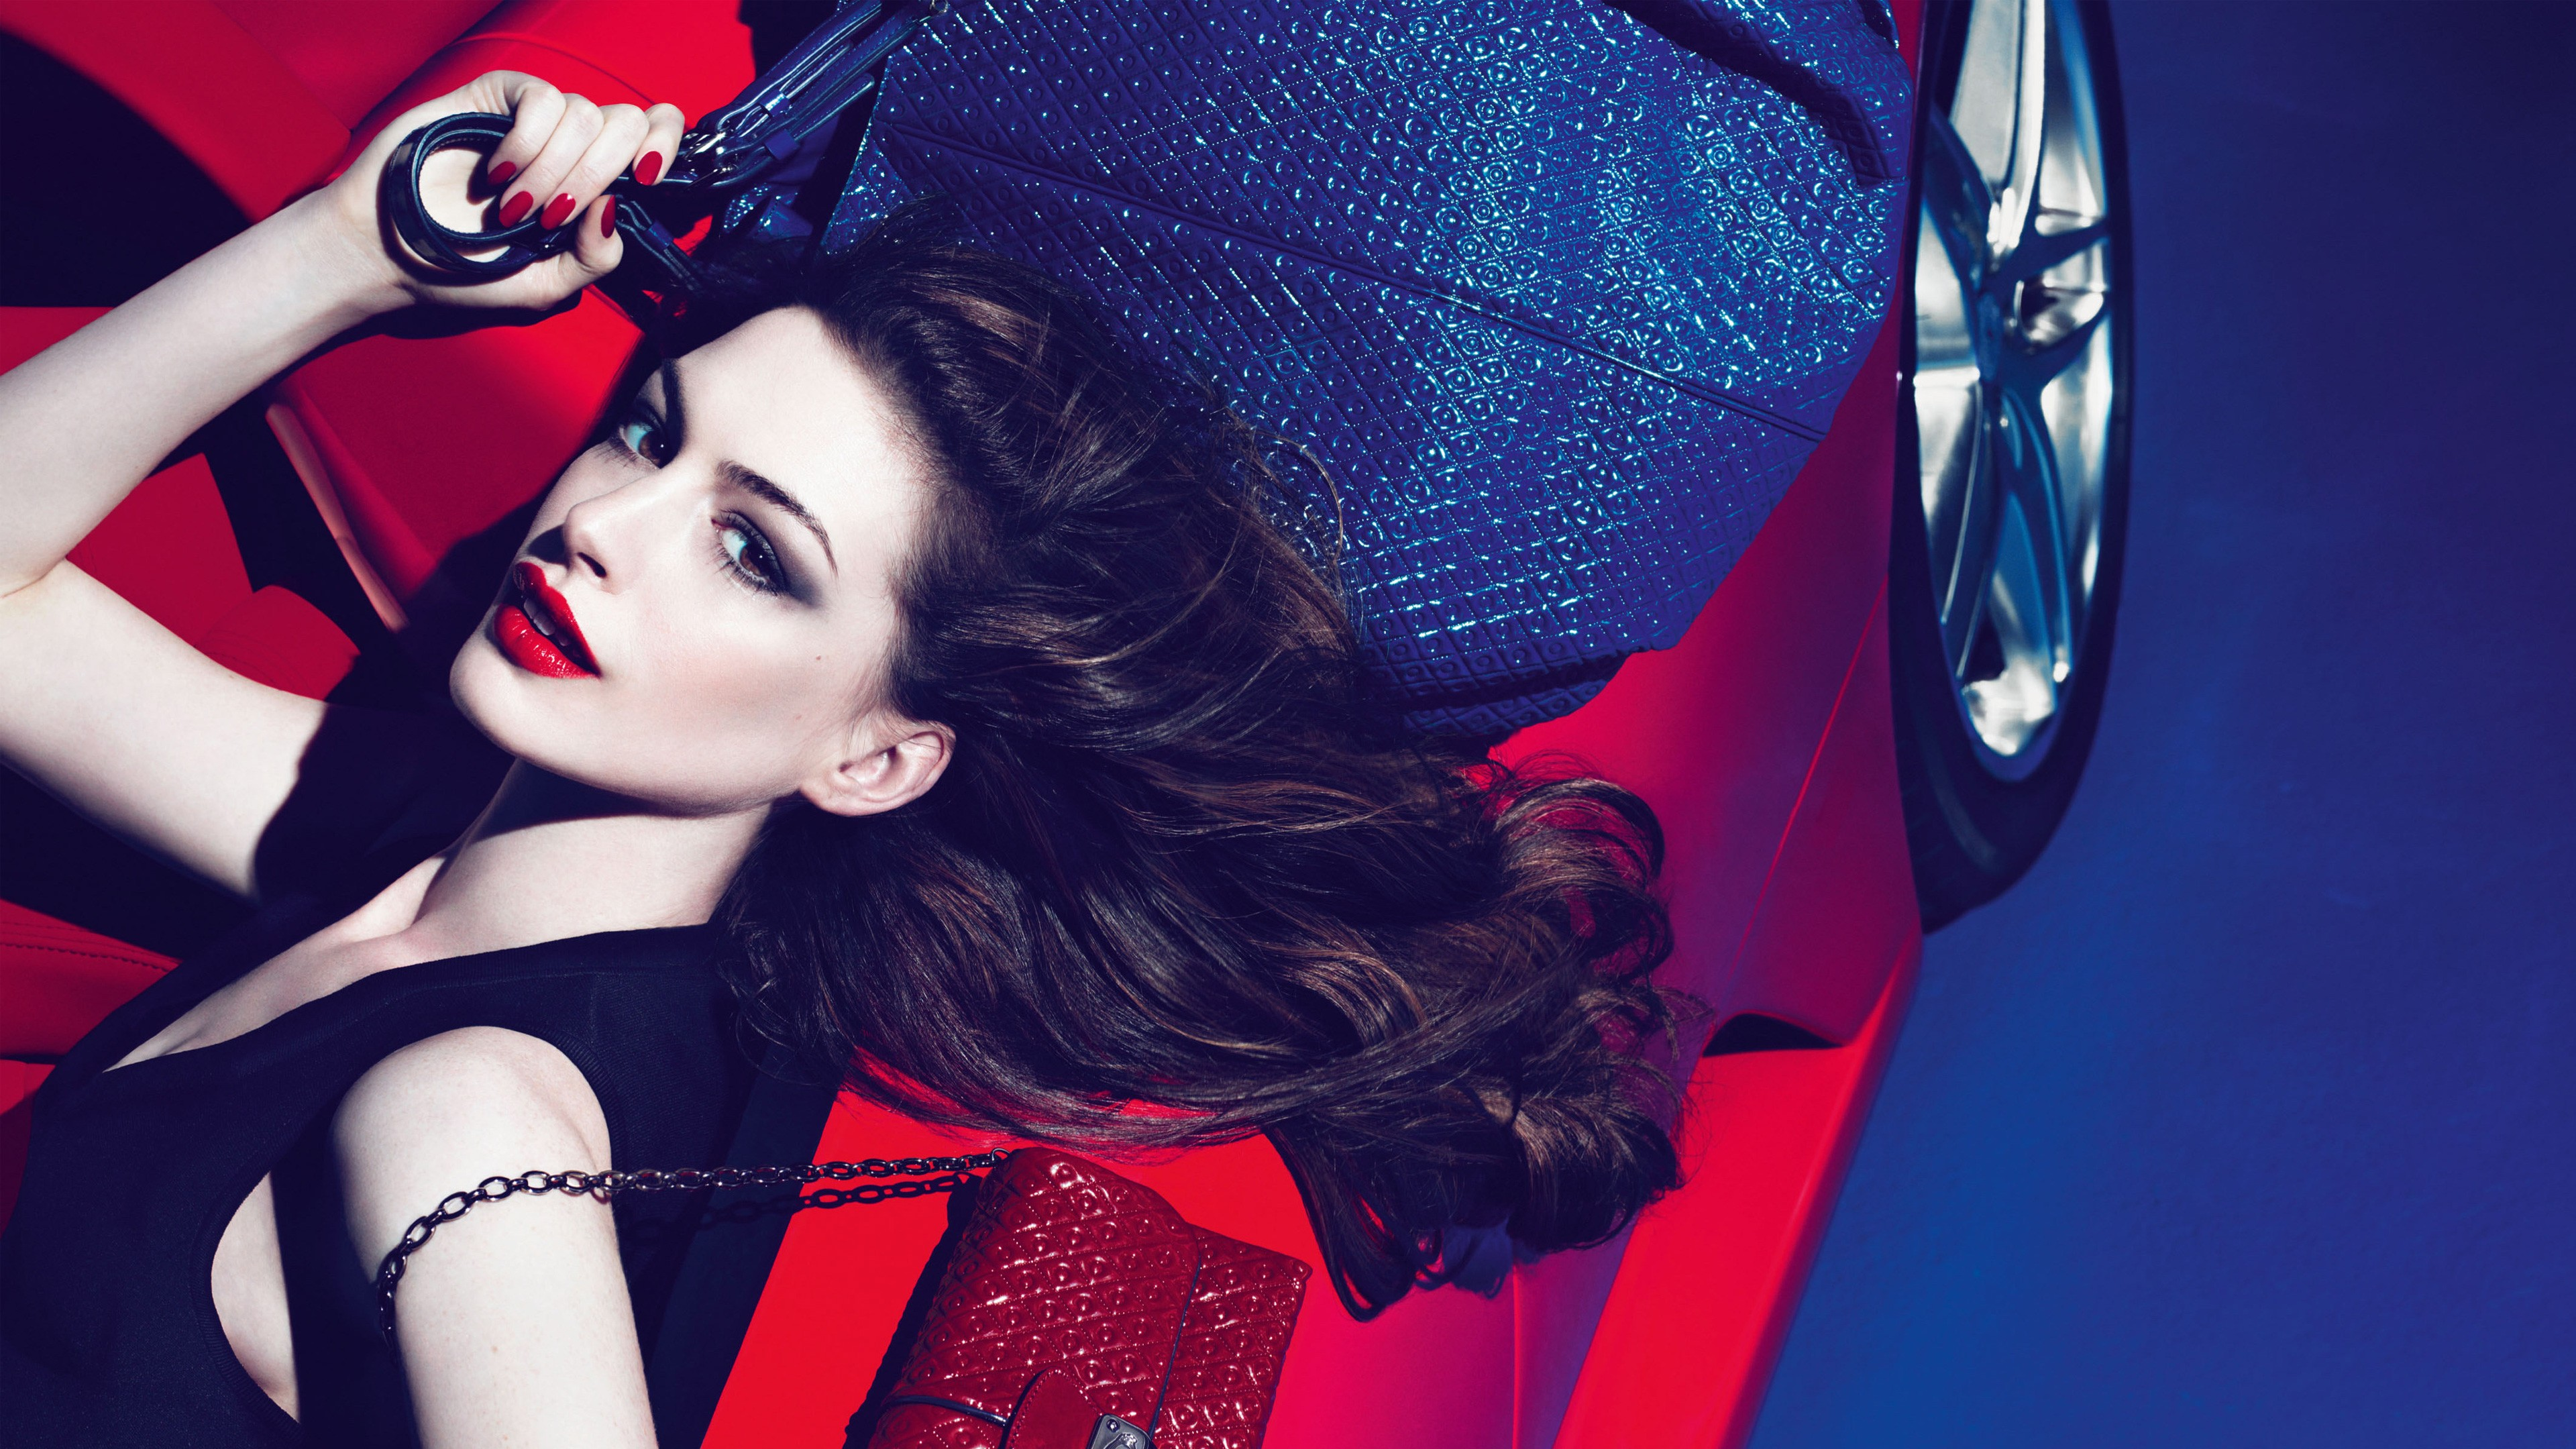 3840x2160 - Anne Hathaway Wallpapers 1